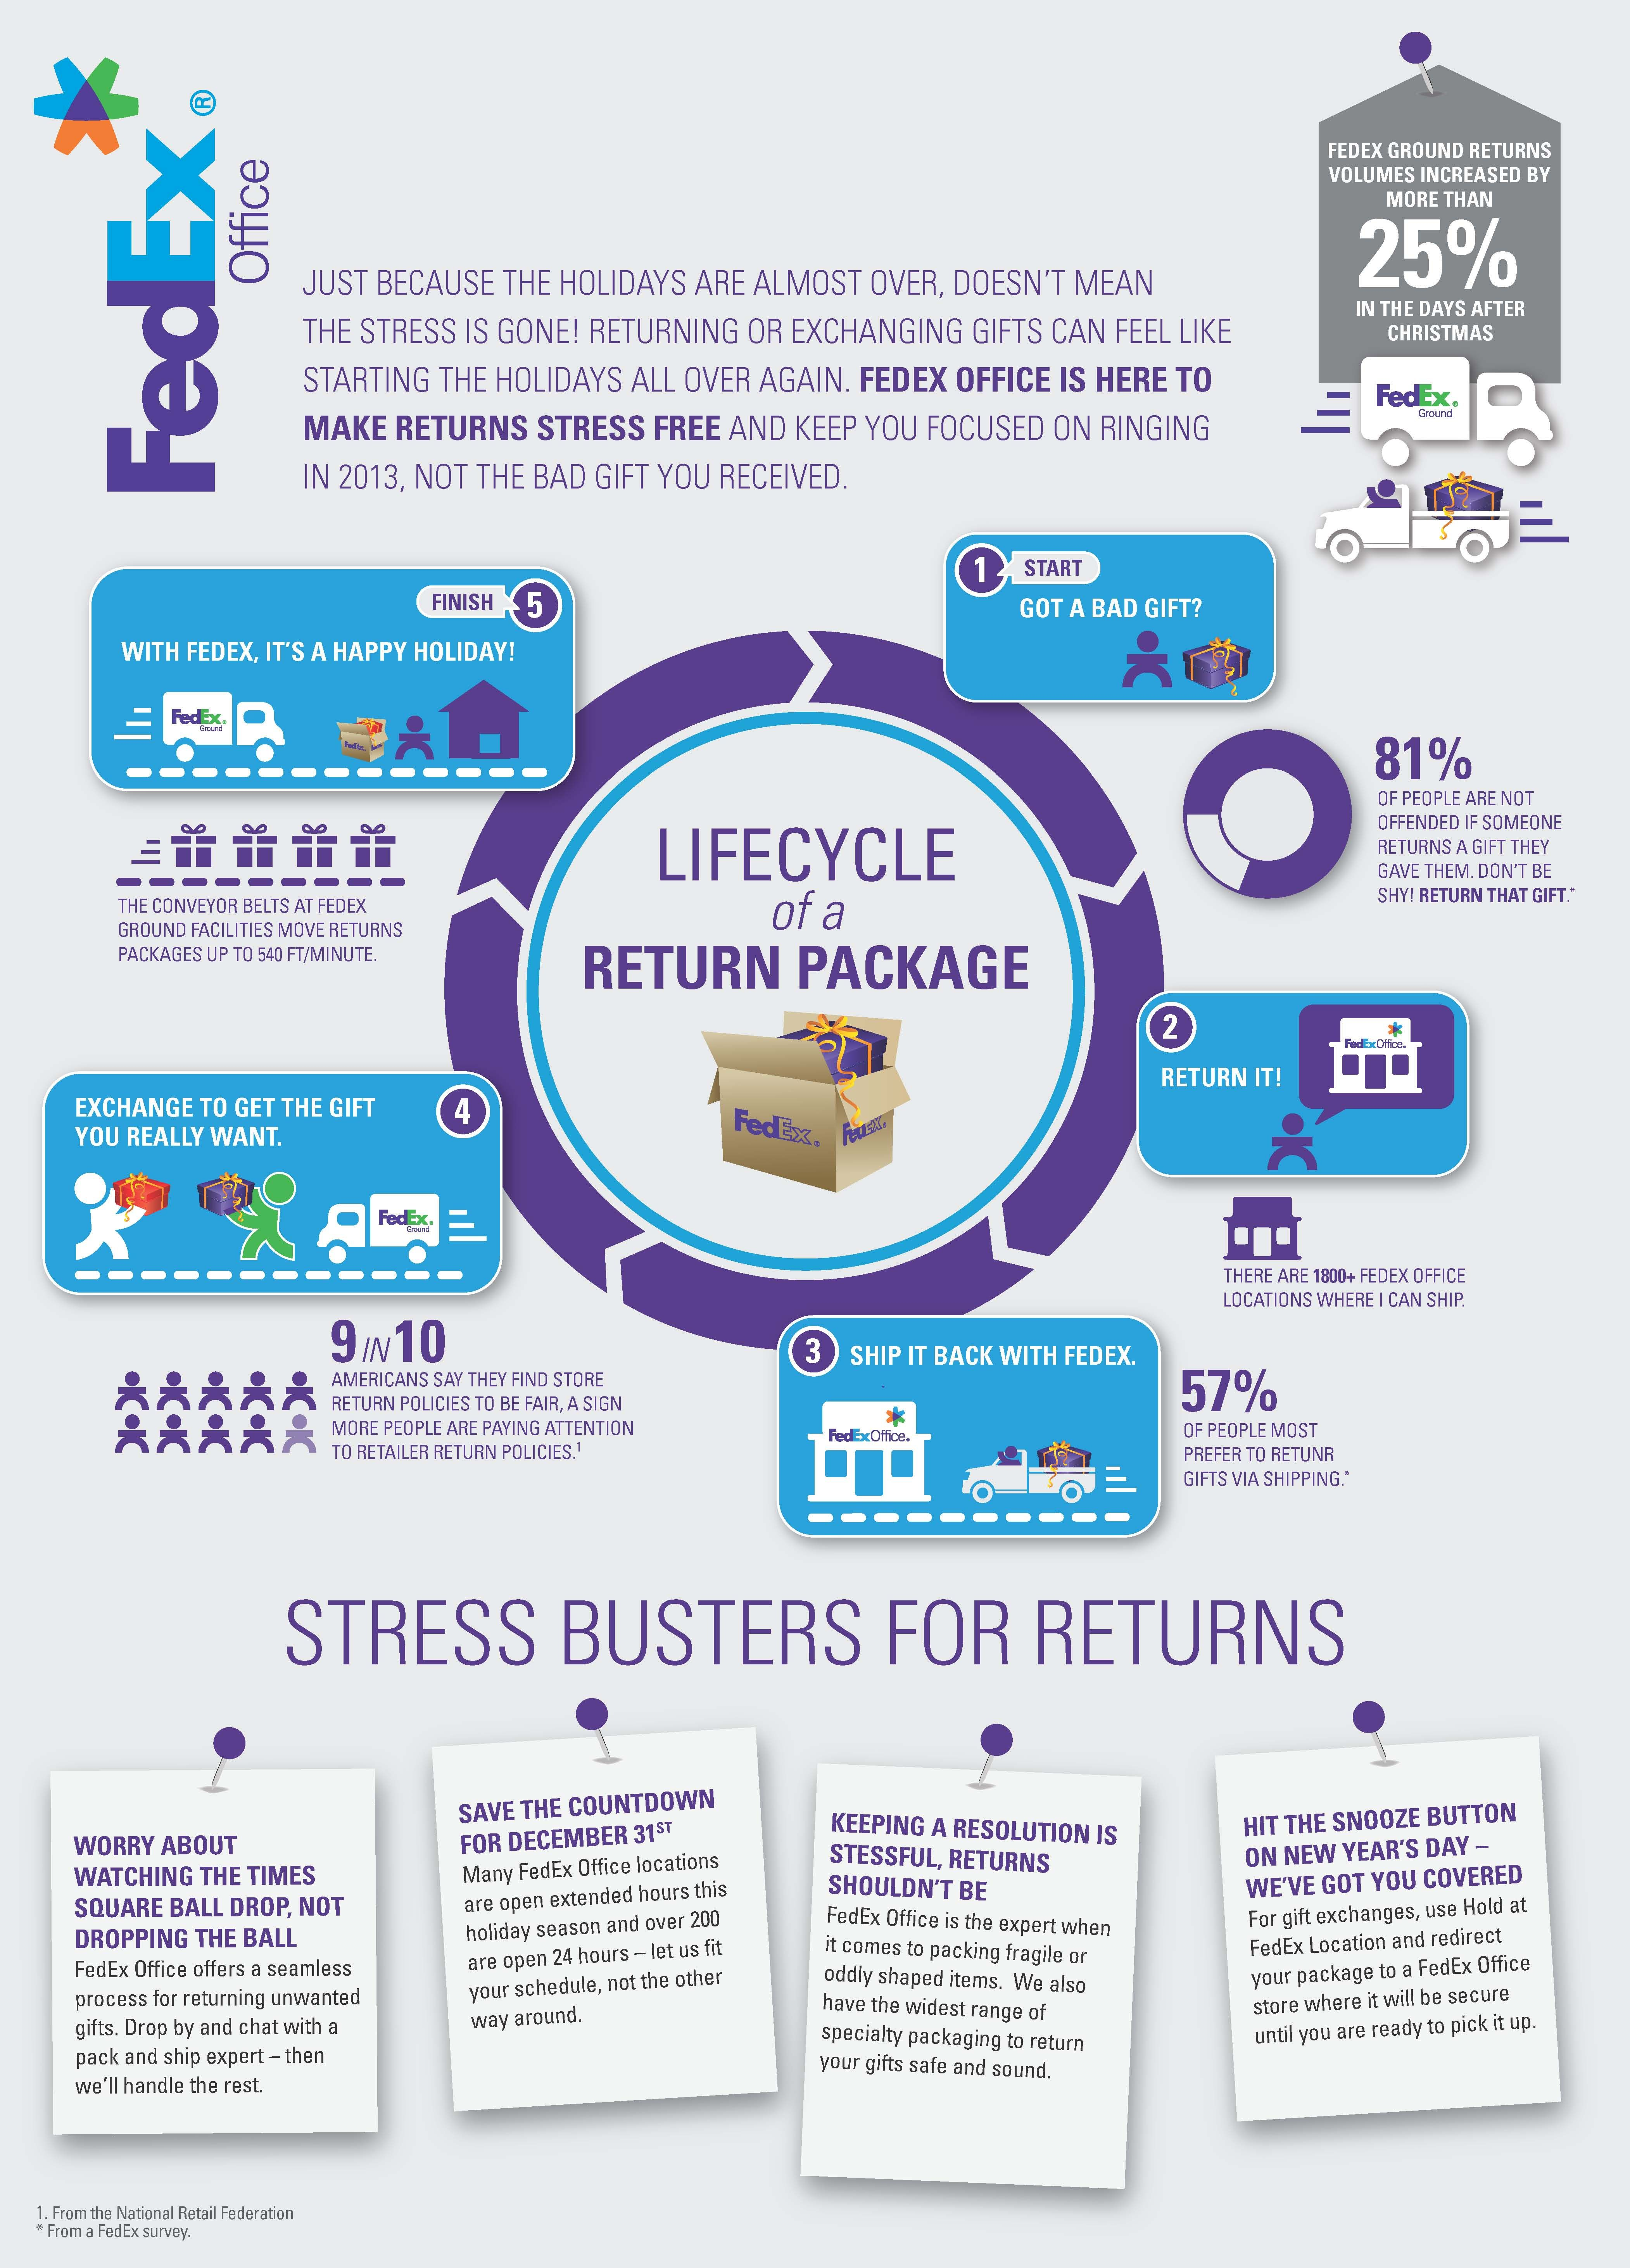 Lifecycle of a return package infographic from FedEx Office ...